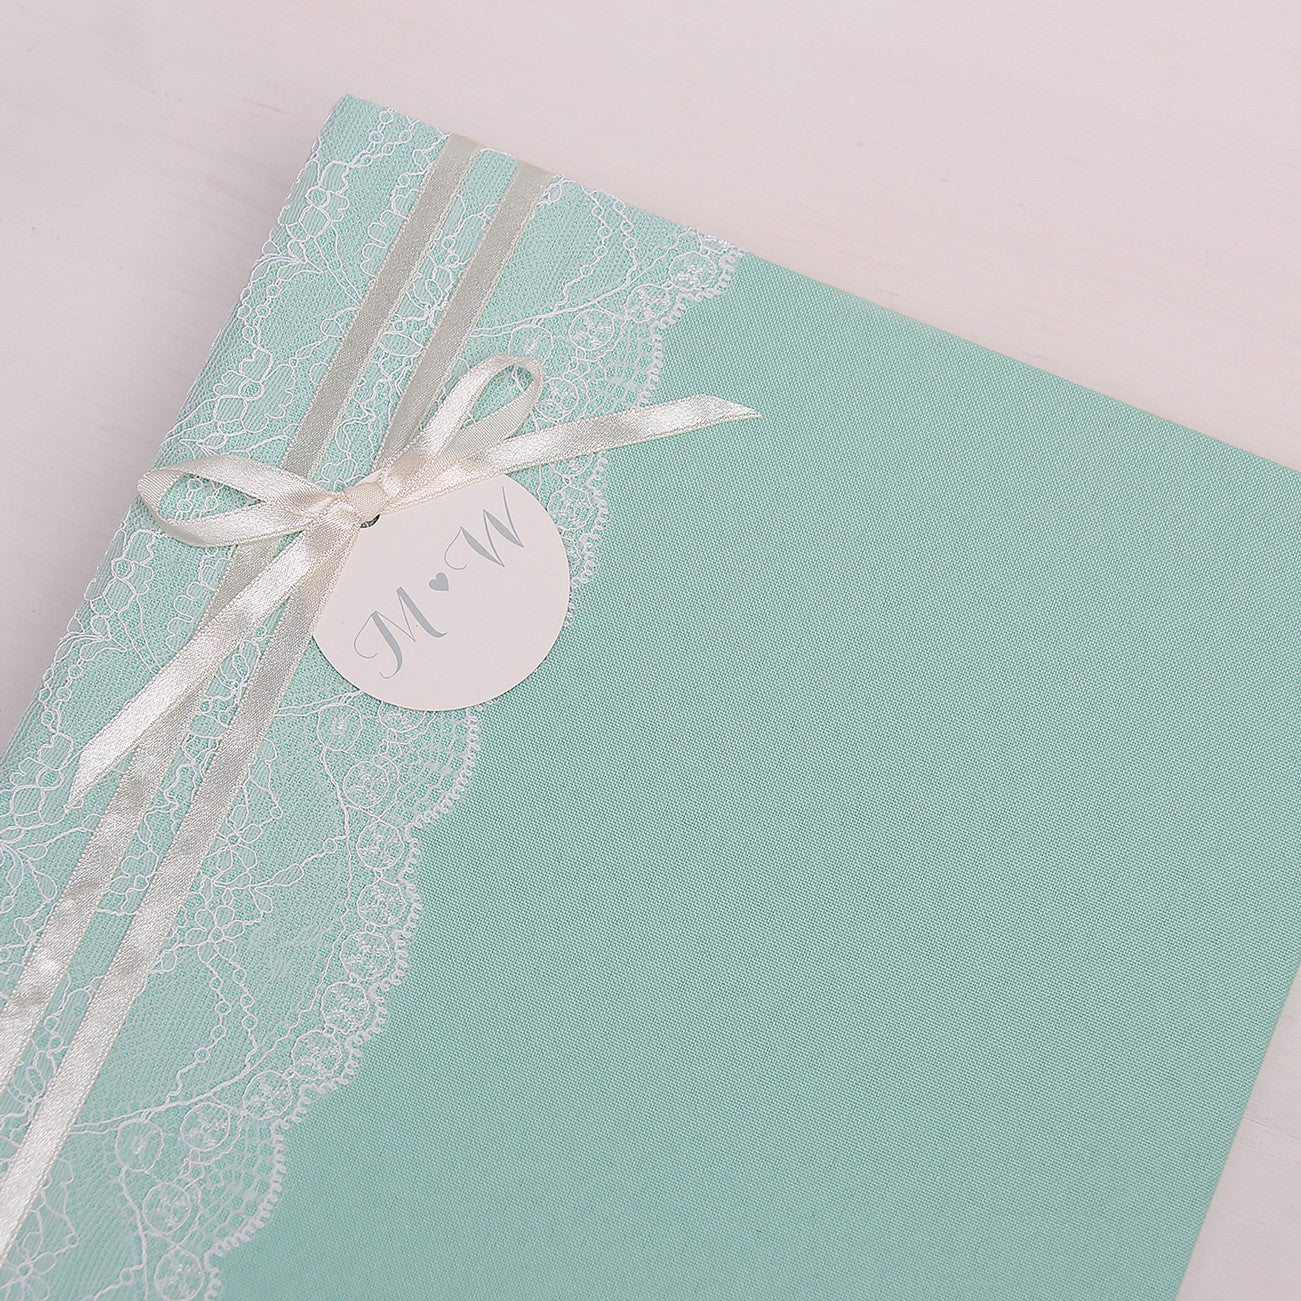 Instax Guest Book Wedding Album Instant Mint with Lace Names in First Page Lettering - Liumy